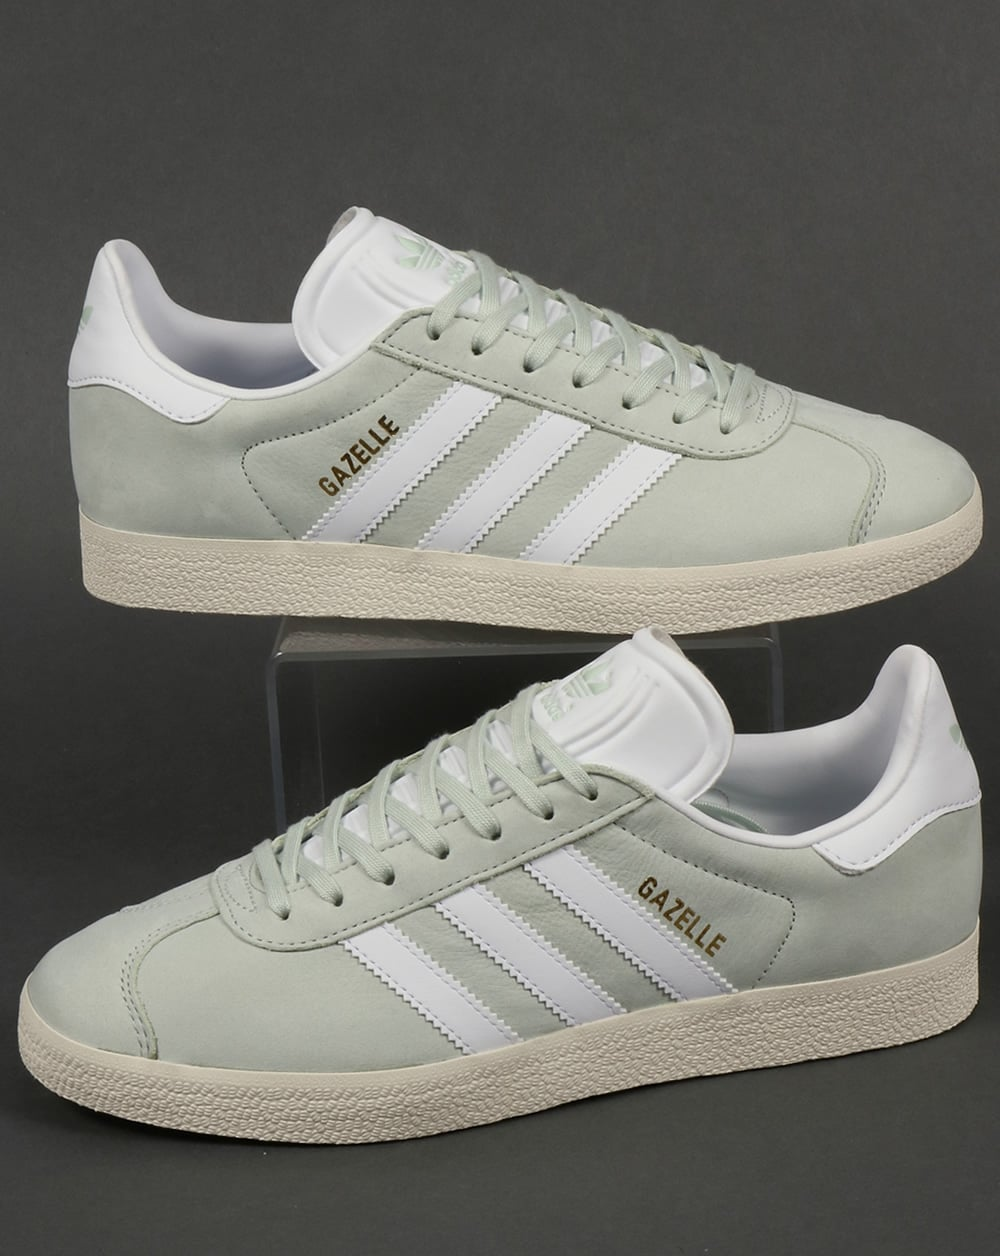 adidas Trainers Adidas Gazelle Leather Trainers Linen Green White 247eb2600